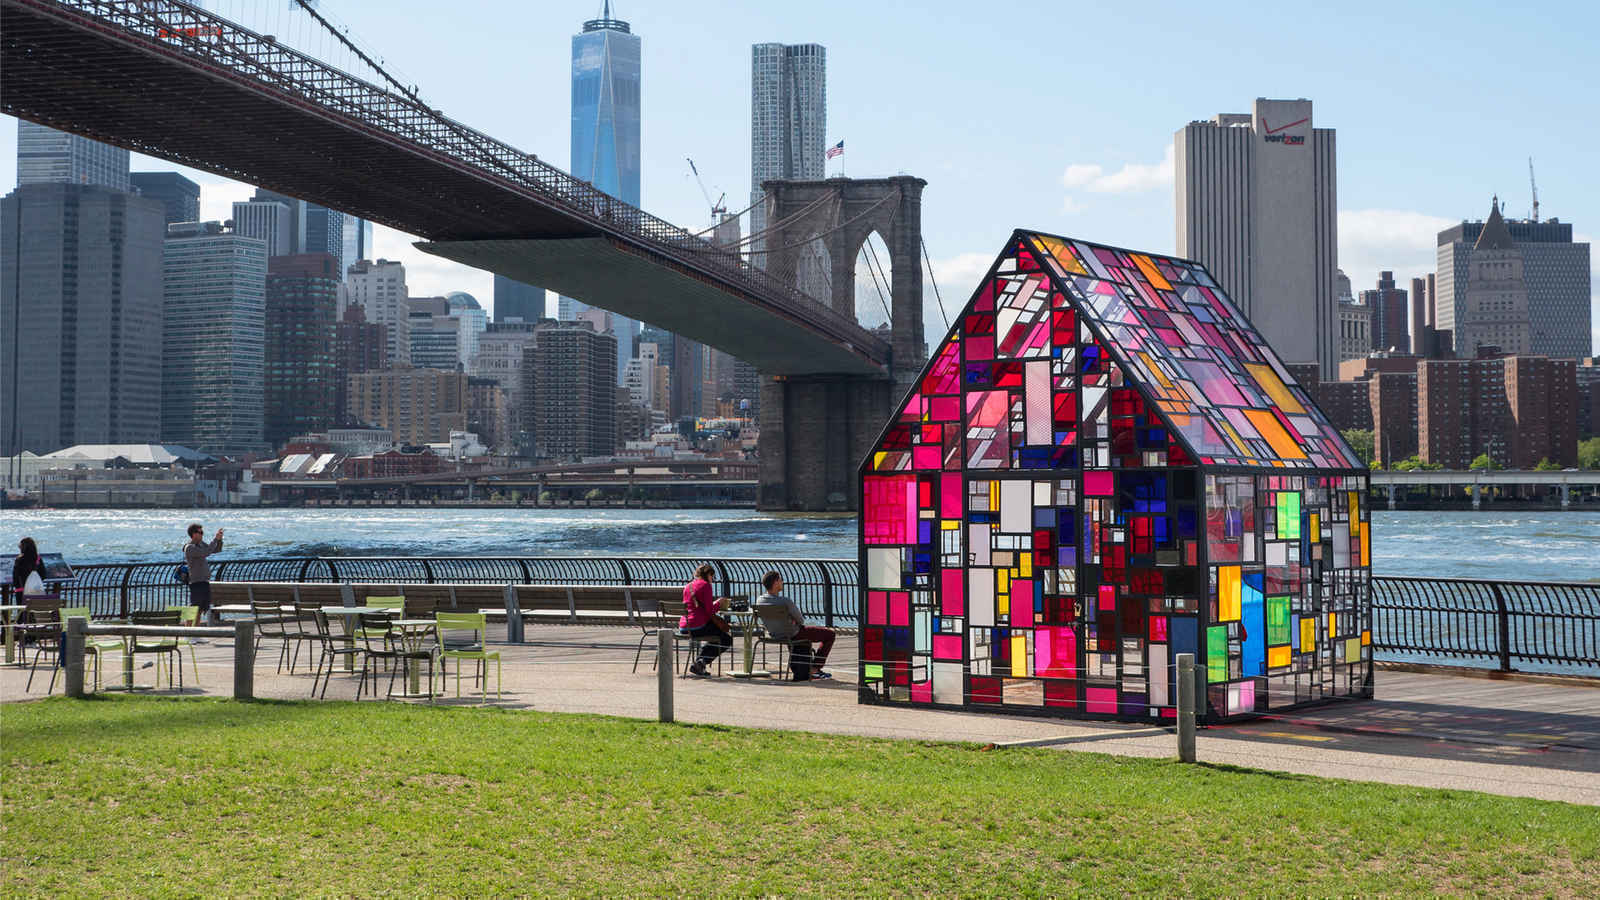 Stained glass art sculpture in Brooklyn Bridge Park, Dumbo, with views of the Manhattan skyline in background